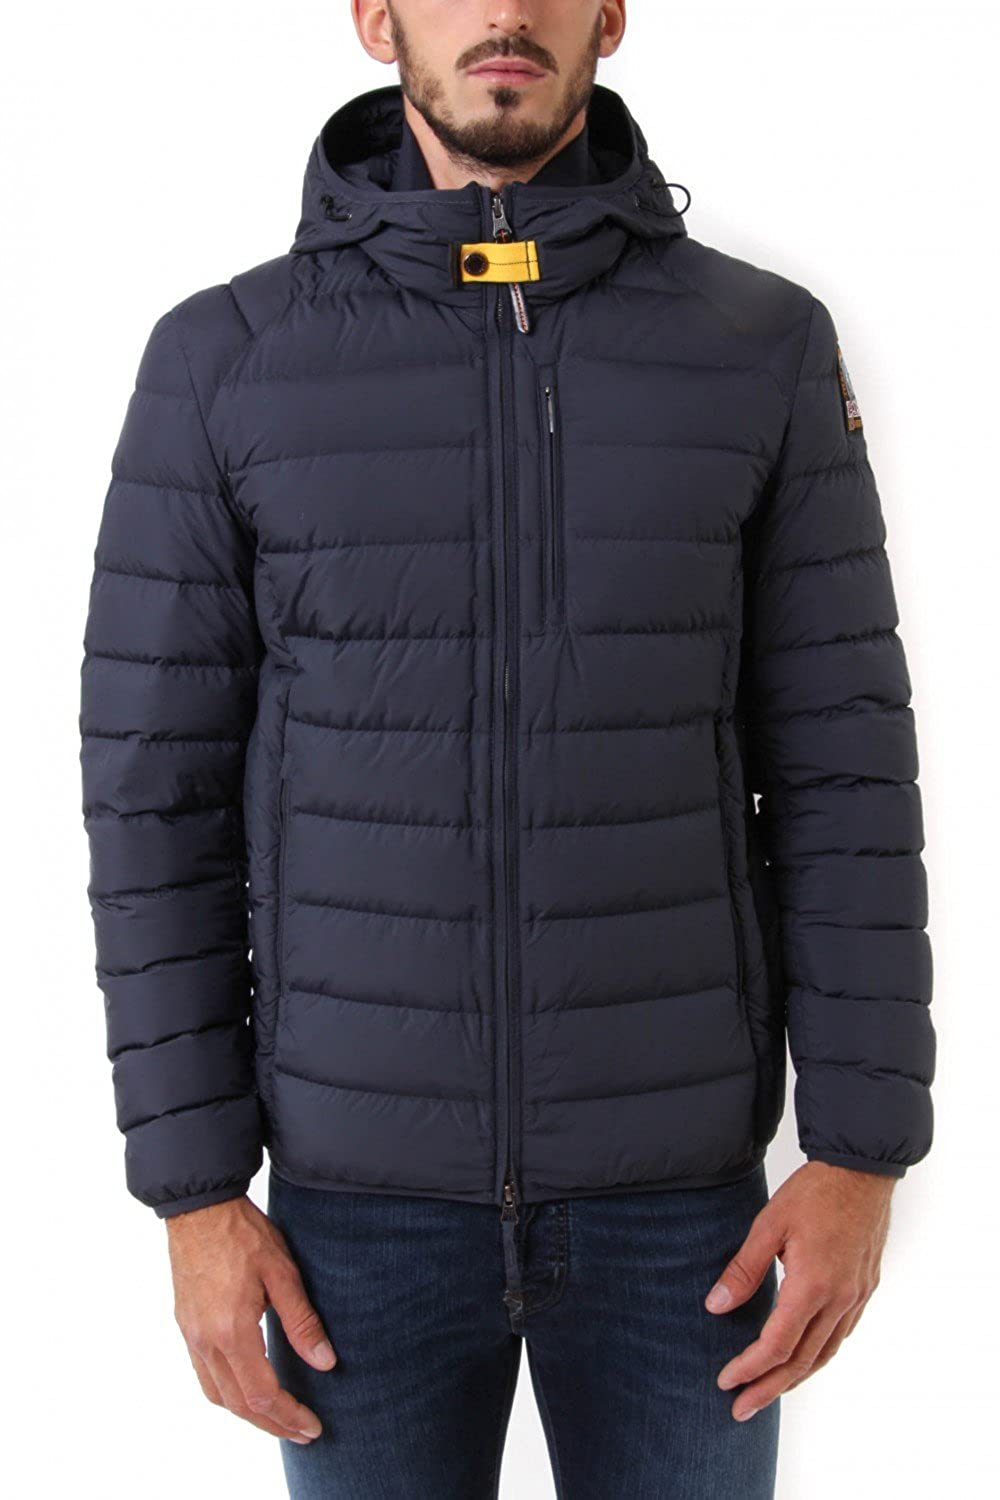 parajumpers echo jacket